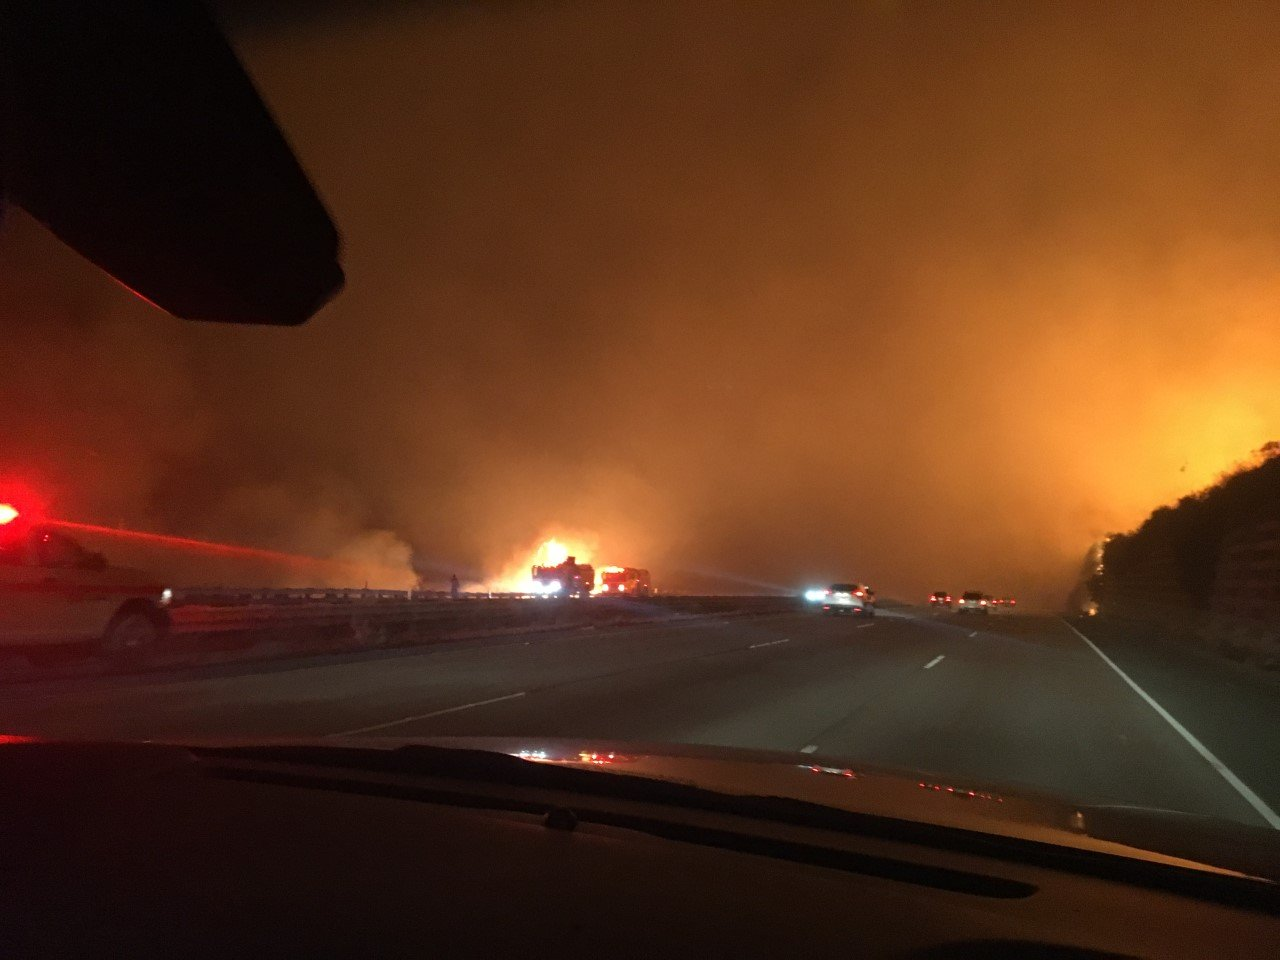 <div class='meta'><div class='origin-logo' data-origin='none'></div><span class='caption-text' data-credit='VENTURASHERIFF/Twitter'>''Use caution on U/S 101 between Ventura and Santa Barbara. Fire is burning on both sides of the highway,'' the Ventura Co. Sheriff wrote on Twitter.</span></div>